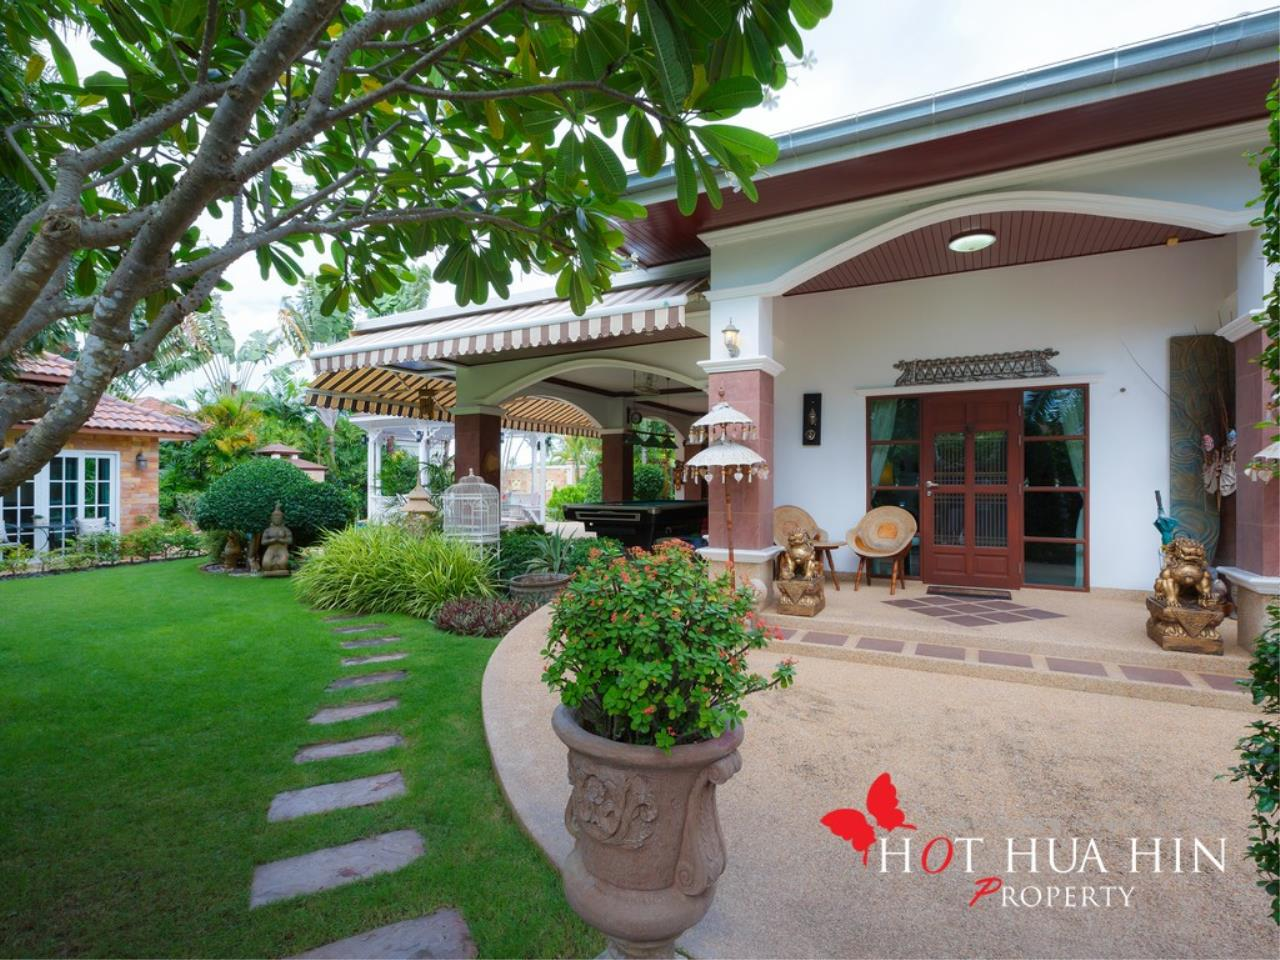 Hot Hua Hin Co. Ltd. Agency's Well Built Home With Stunning Gardens And Two Full Kitchens 4